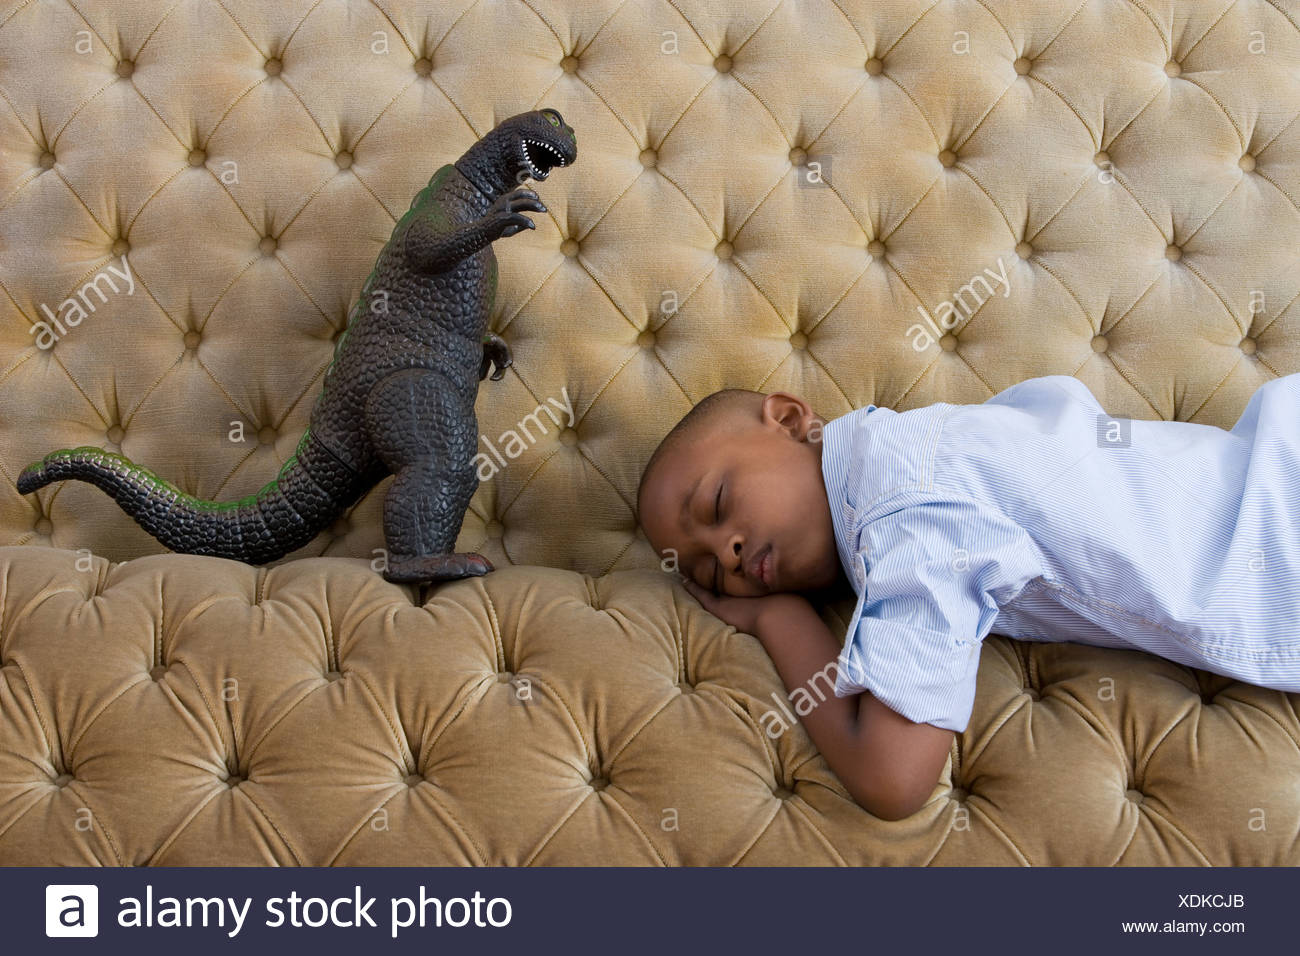 Toy monster and boy sleeping - Stock Image